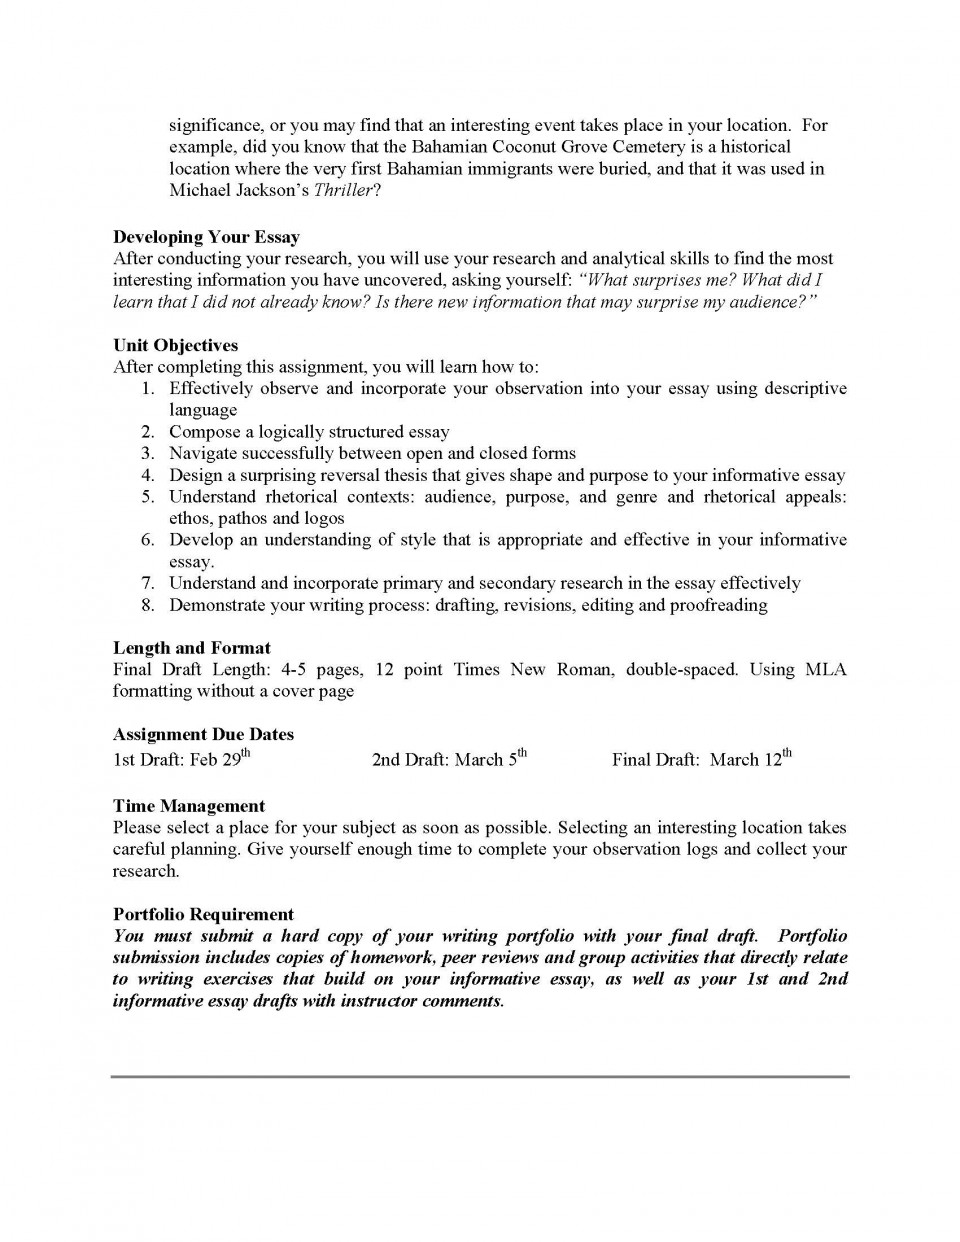 010 Informative Essay Ideas Unit Assignment Page 2 Wondrous Prompts Writing Topics 4th Grade Expository Middle School 960